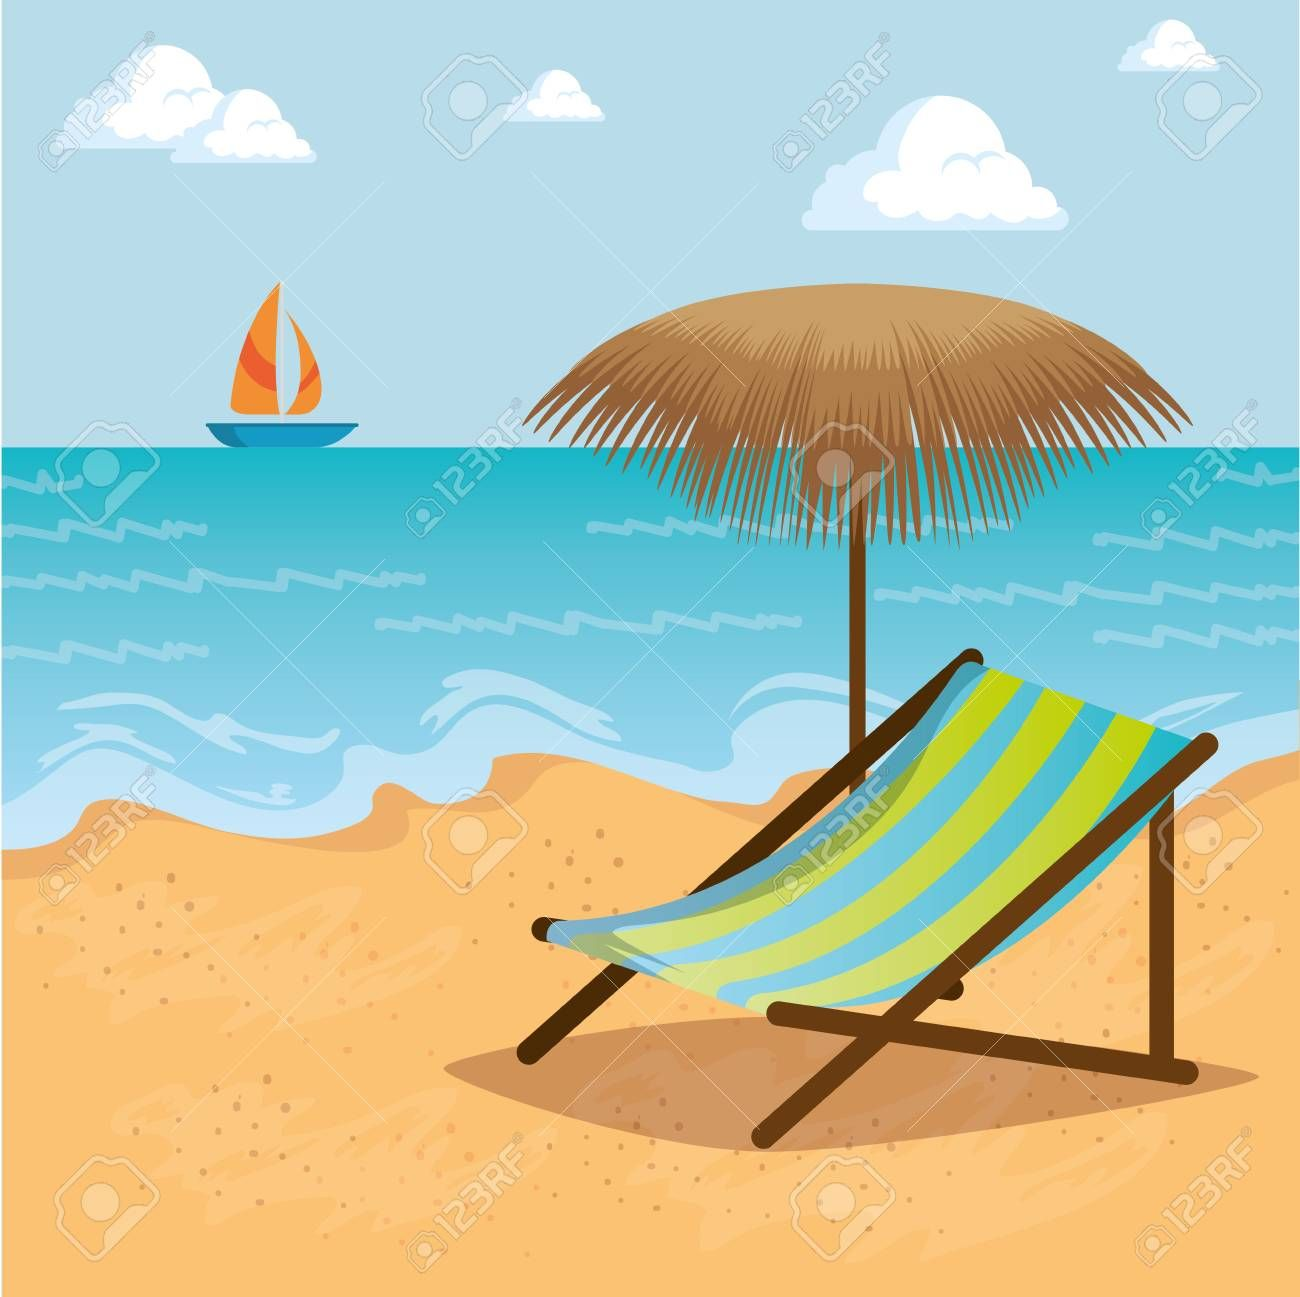 Wooden Beach Chair On A Beach Landscape Summer Holiday Vacation Vector Illustration Graphic Design Ad Lan In 2020 Wooden Beach Chairs Beach Landscape Beach Chairs